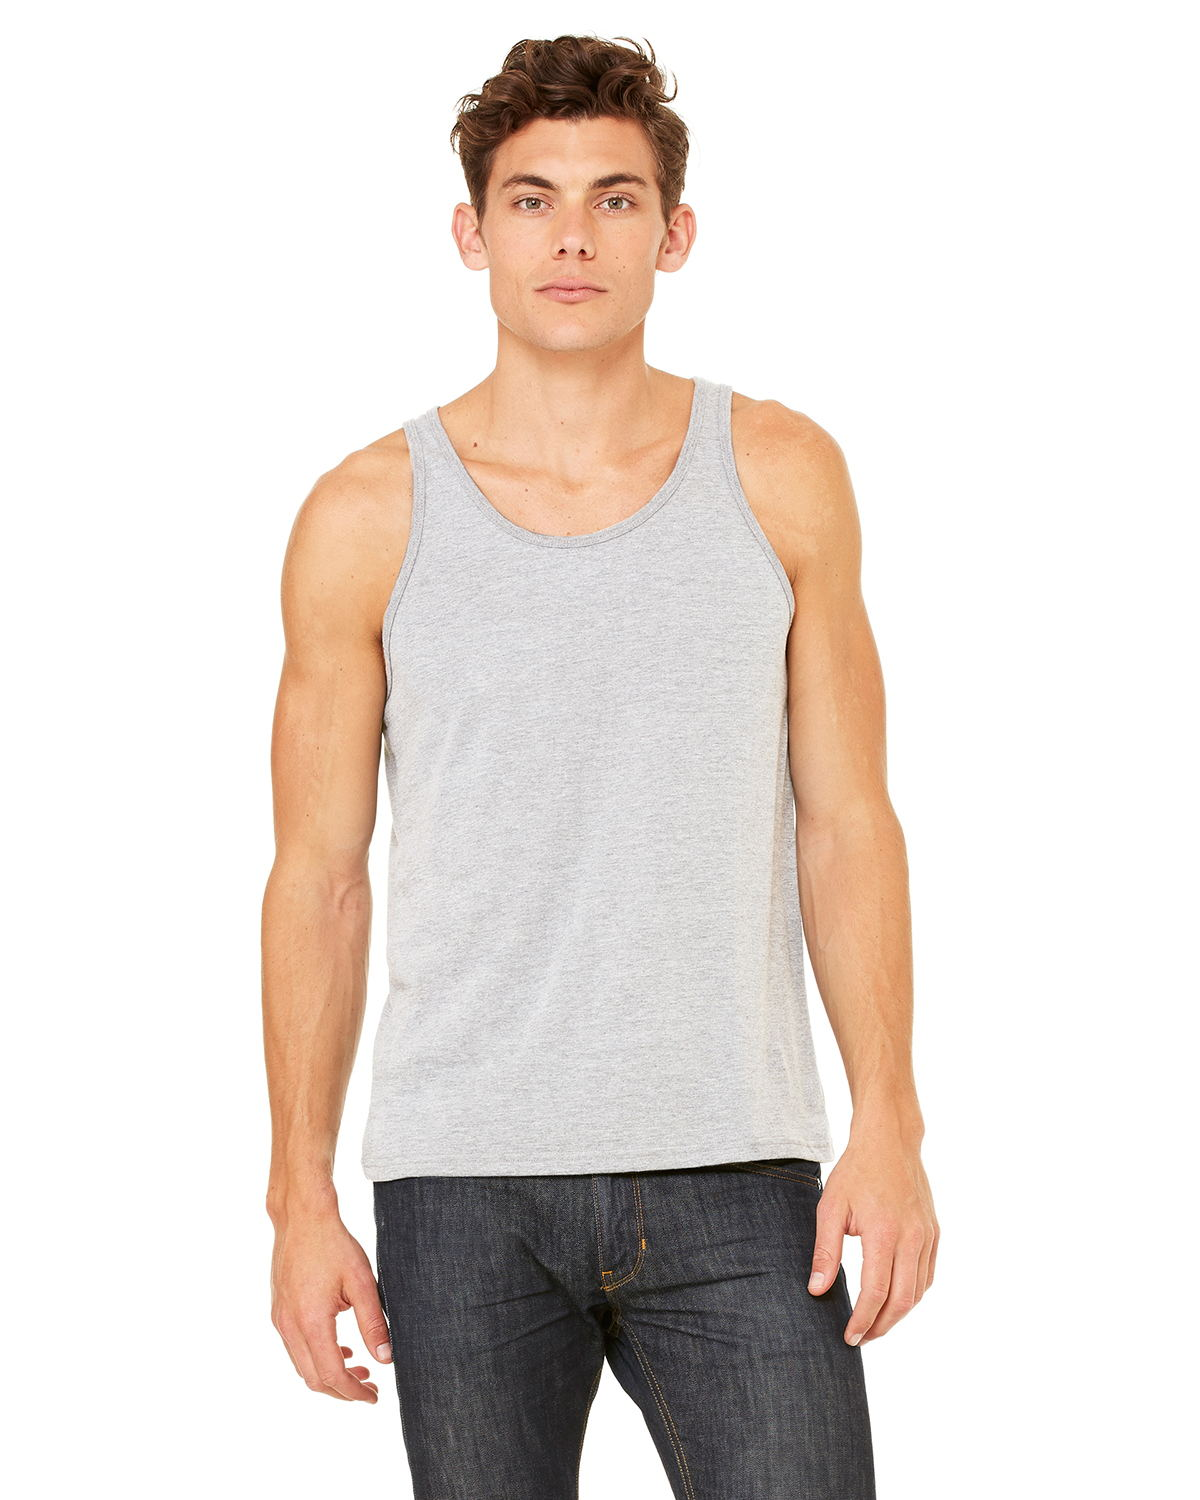 Bella + Canvas - 3480U Unisex Made in the USA Jersey ...